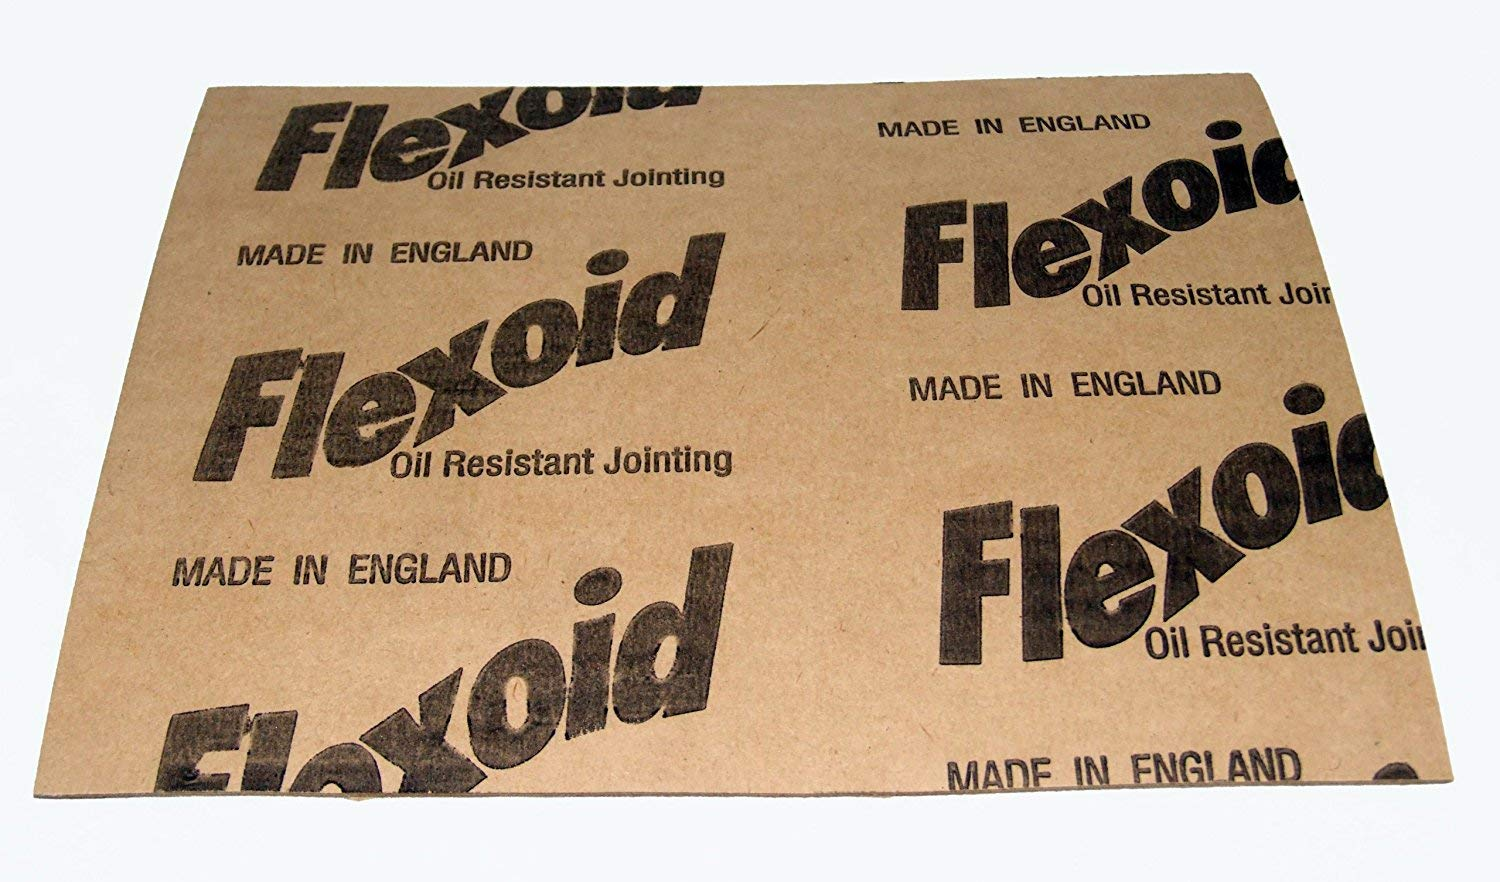 Gasket Paper 0.4mm Thick - 2 x A4 Sheets - Flexoid Brand